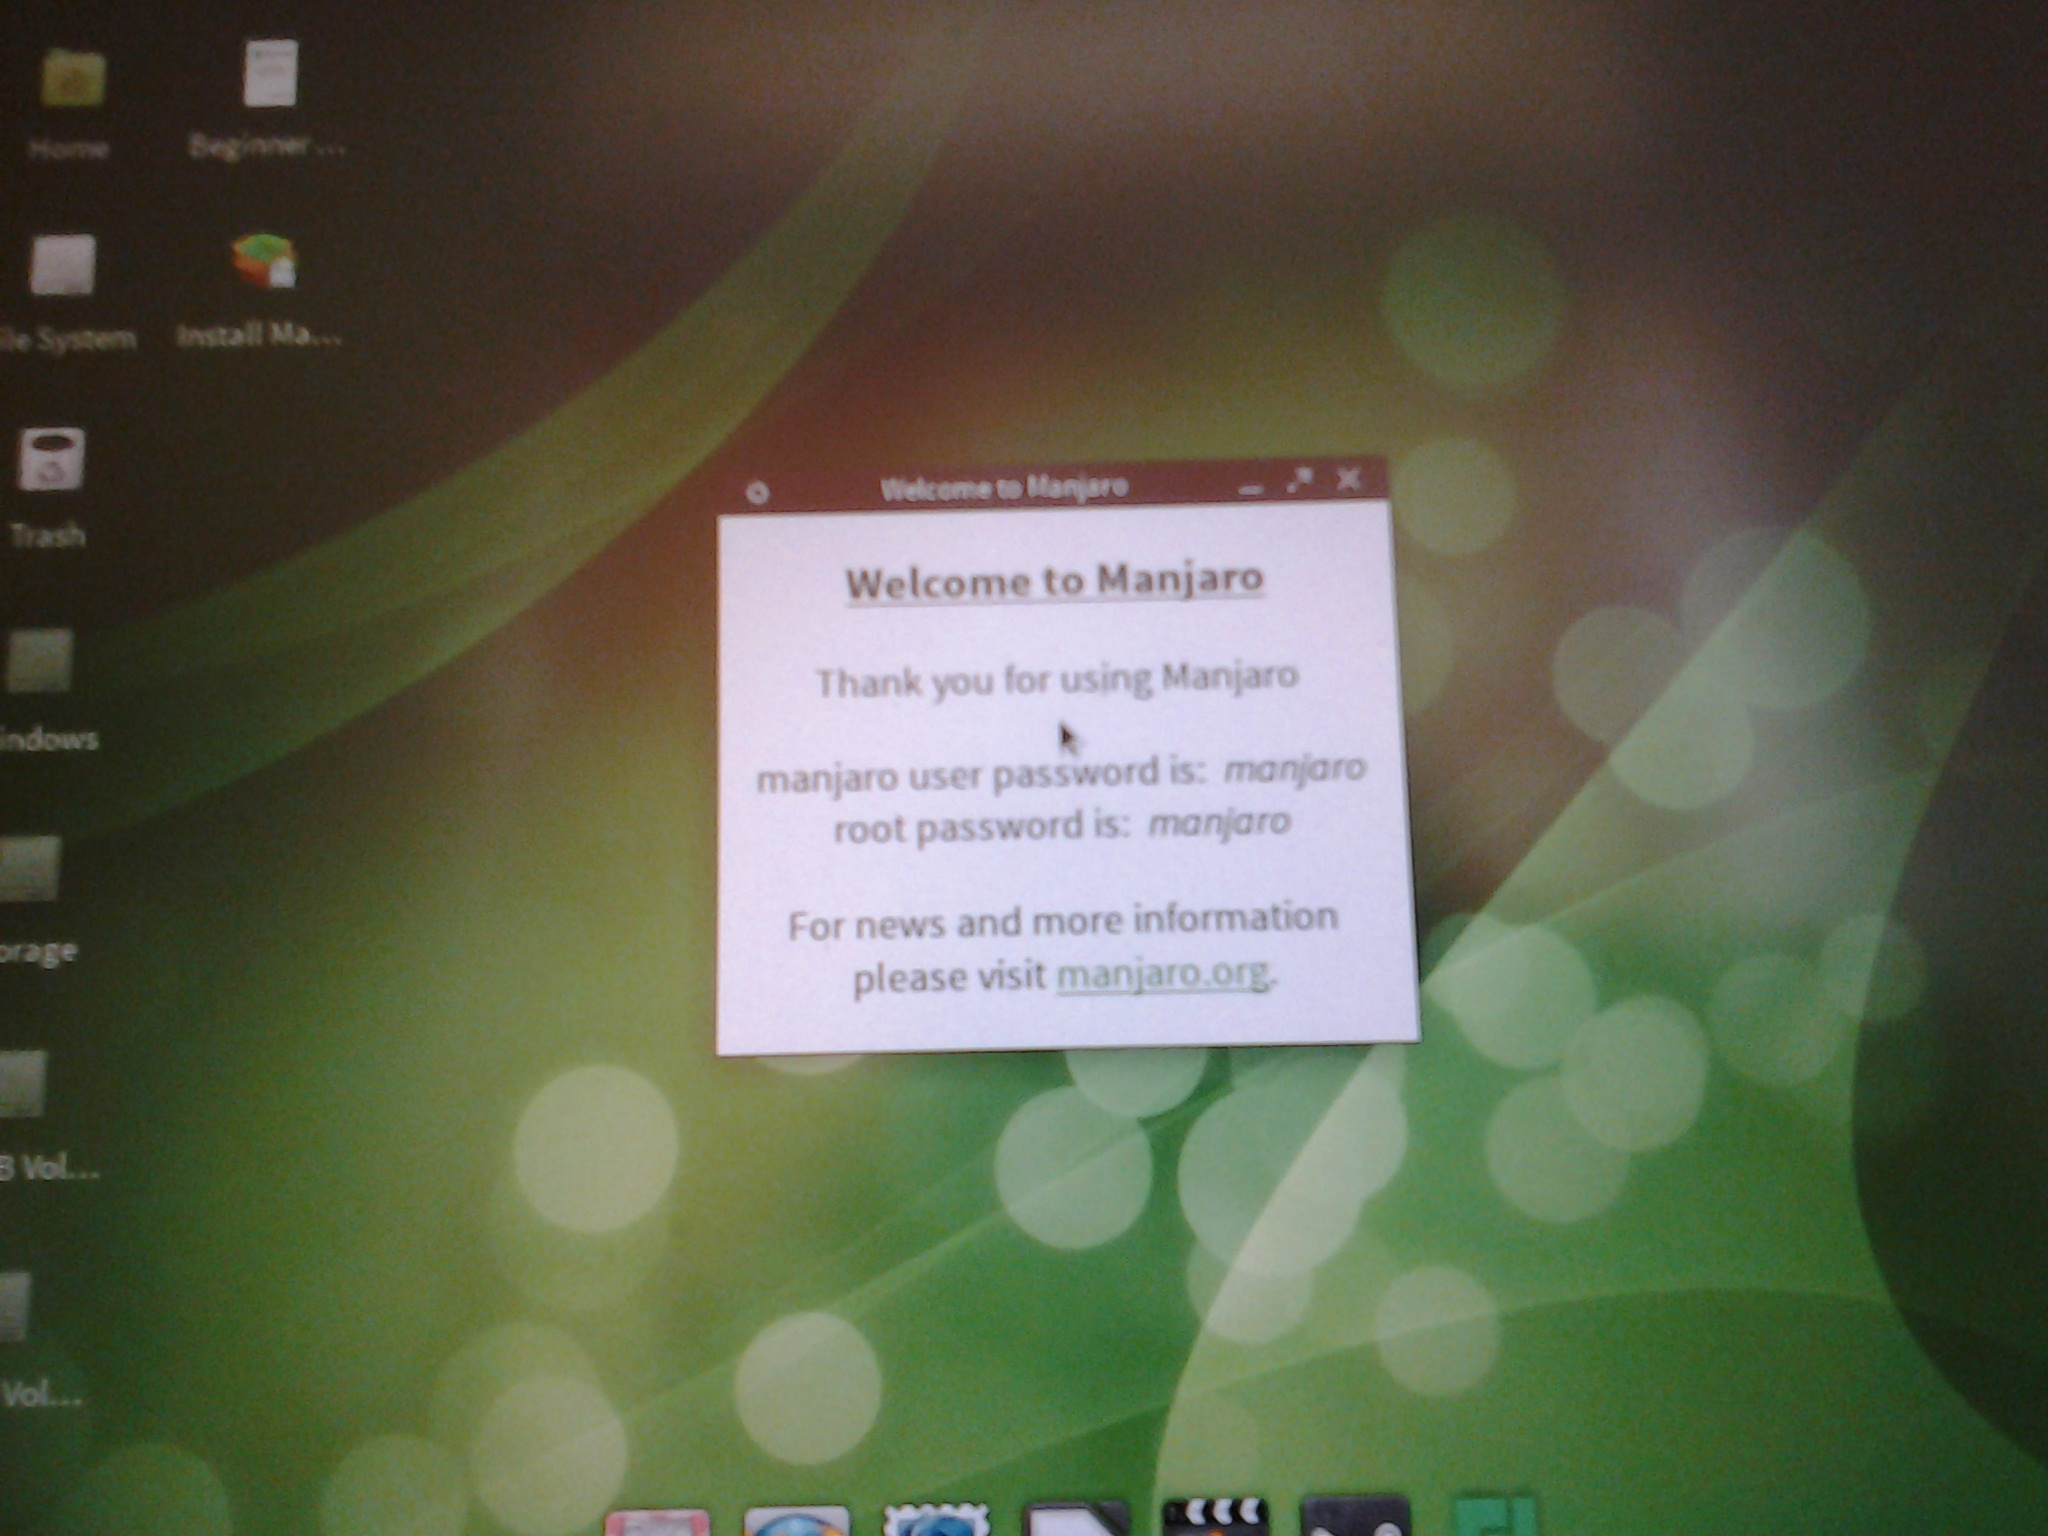 Setting up Manjaro Linux 0 8 6 on HP TC4400 tablet PC